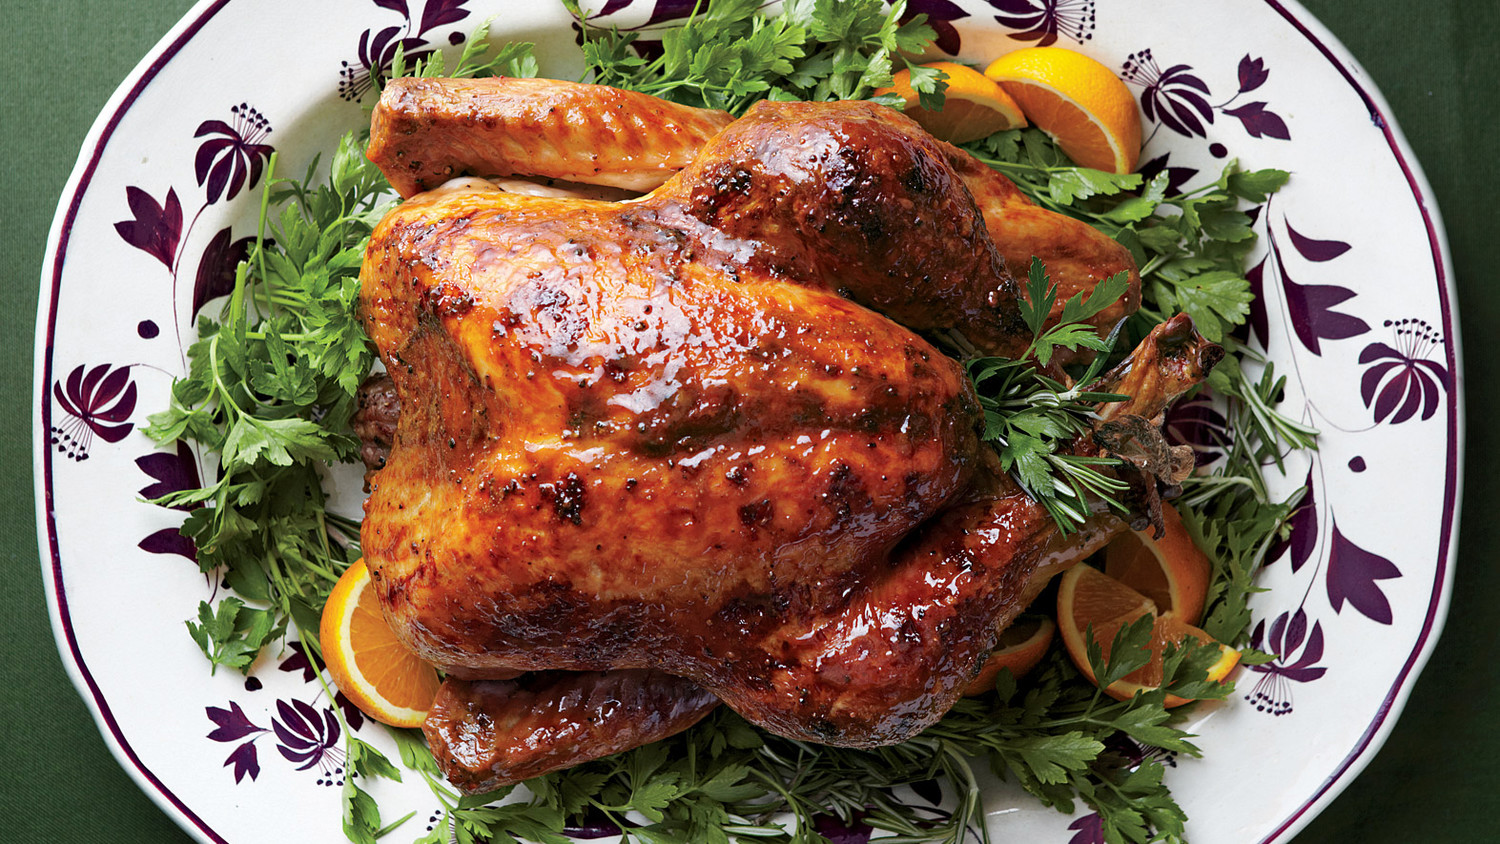 How Much Turkey Should You Prepare For Thanksgiving?